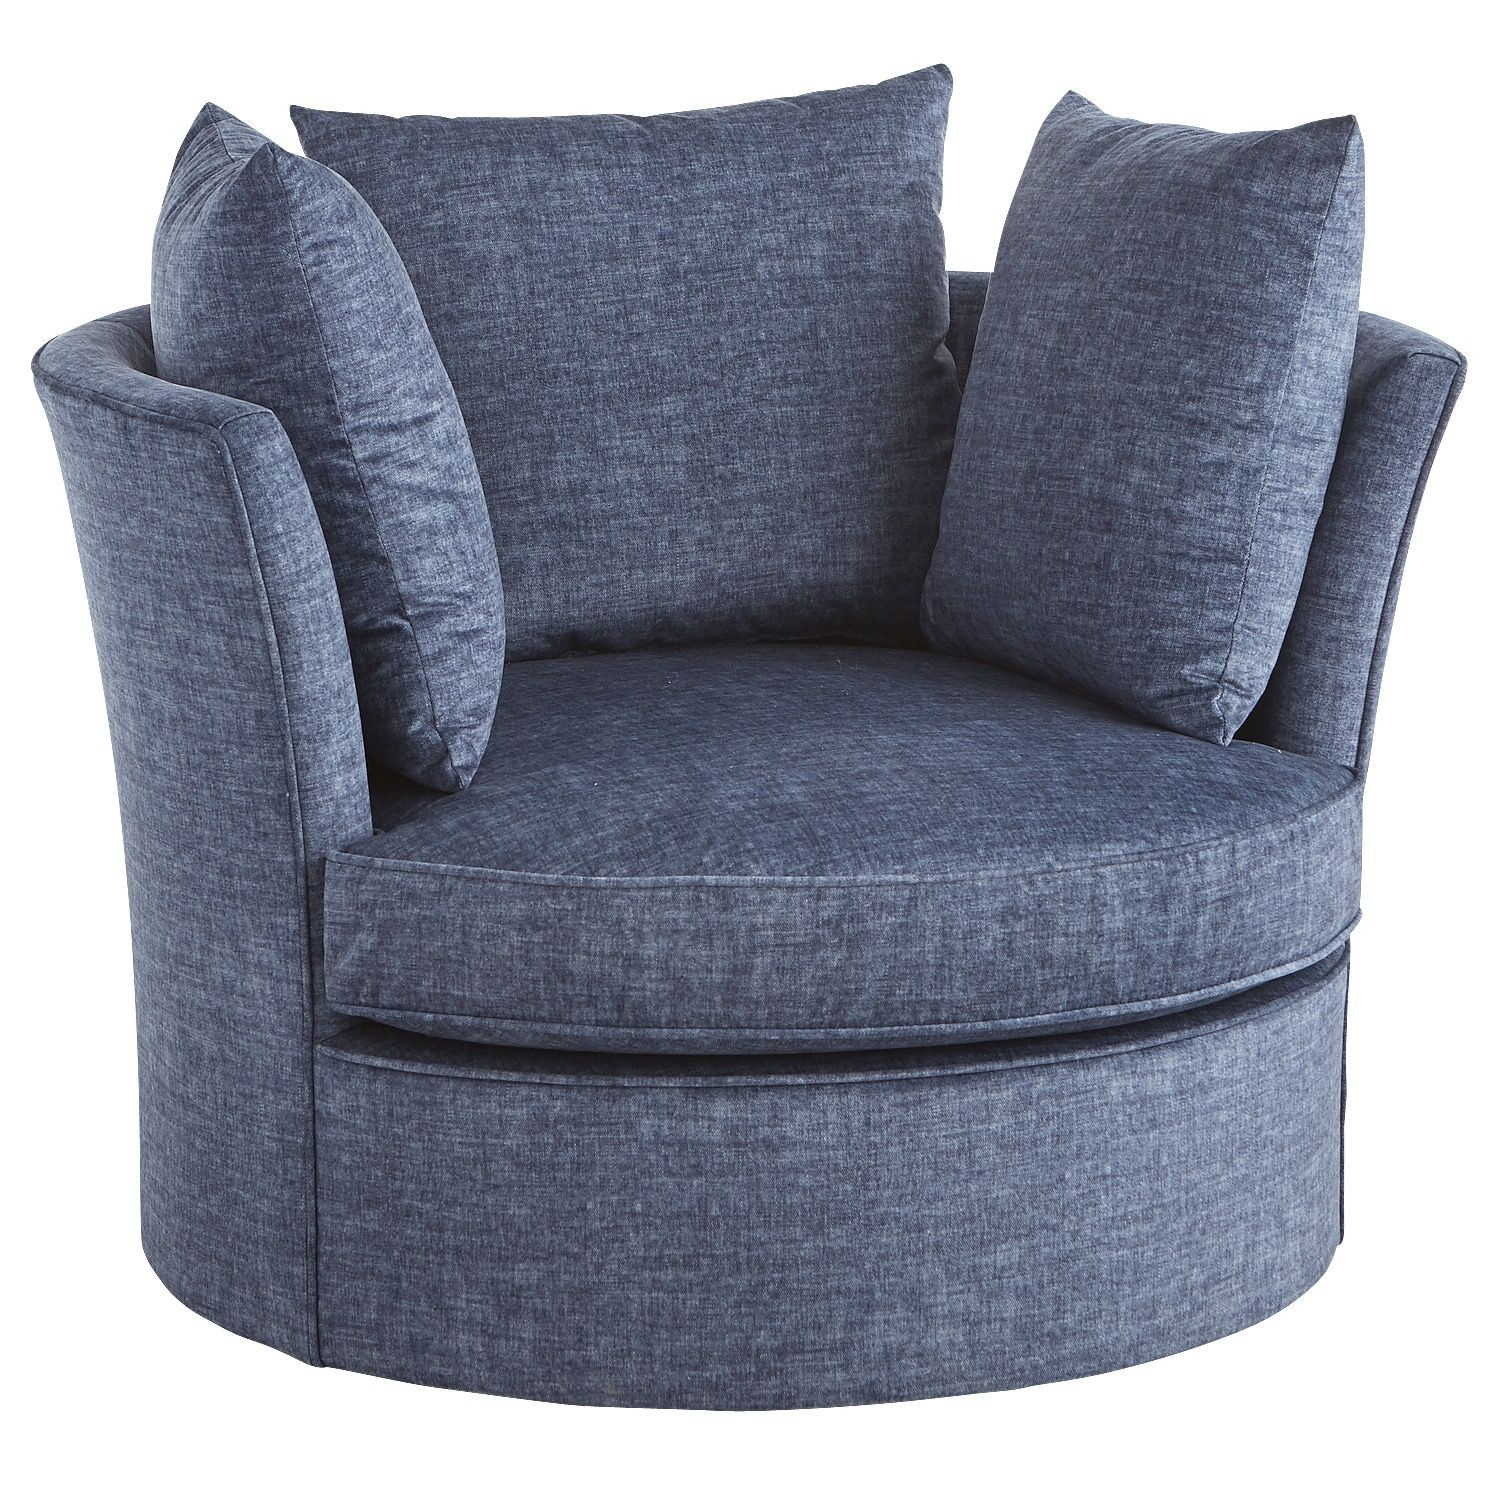 Ike Navy Blue Oversized Swivel Chair | Products | Pinterest | Chair Regarding Harbor Grey Swivel Accent Chairs (Image 15 of 25)